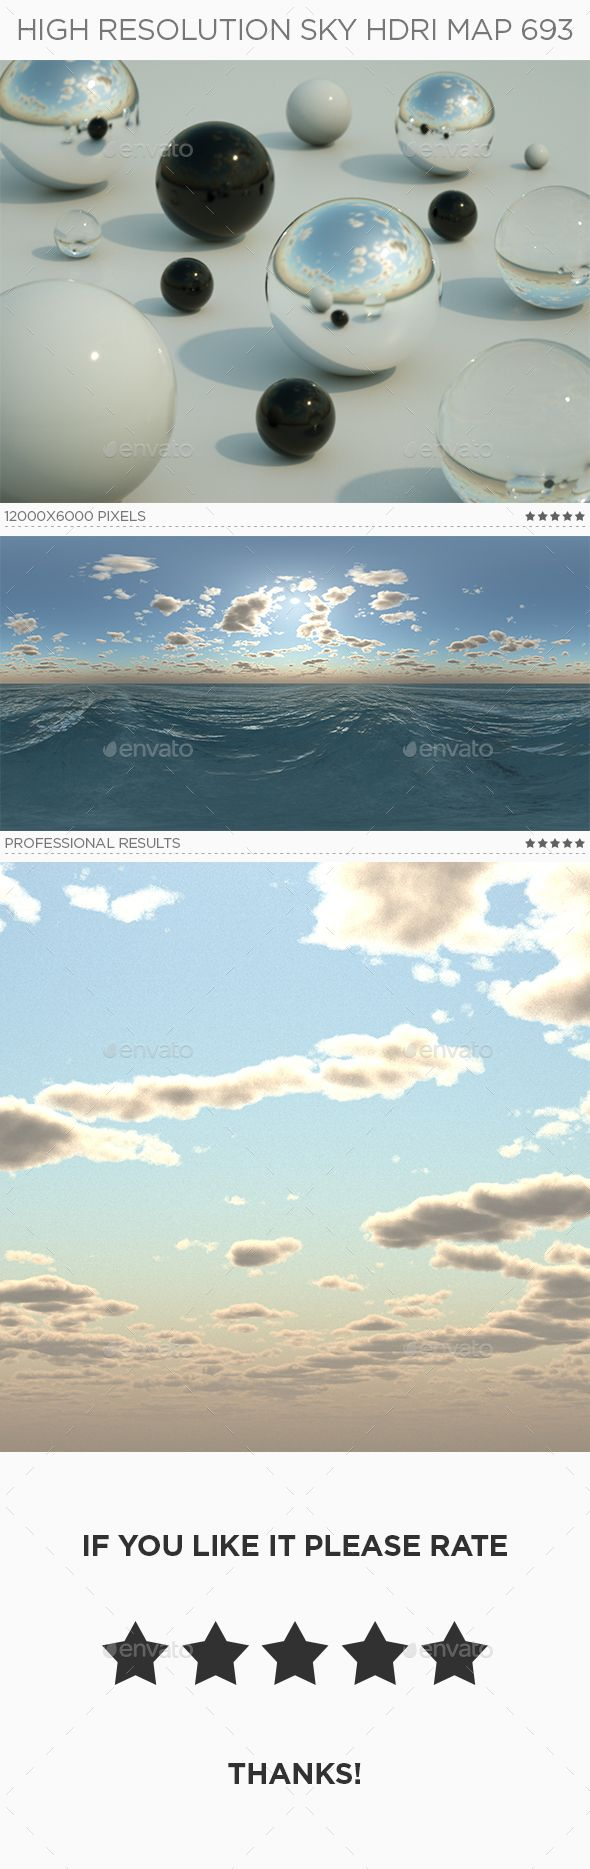 High Resolution Sky Hdri Map 693 In 2020 Hdri Images High Resolution Sky